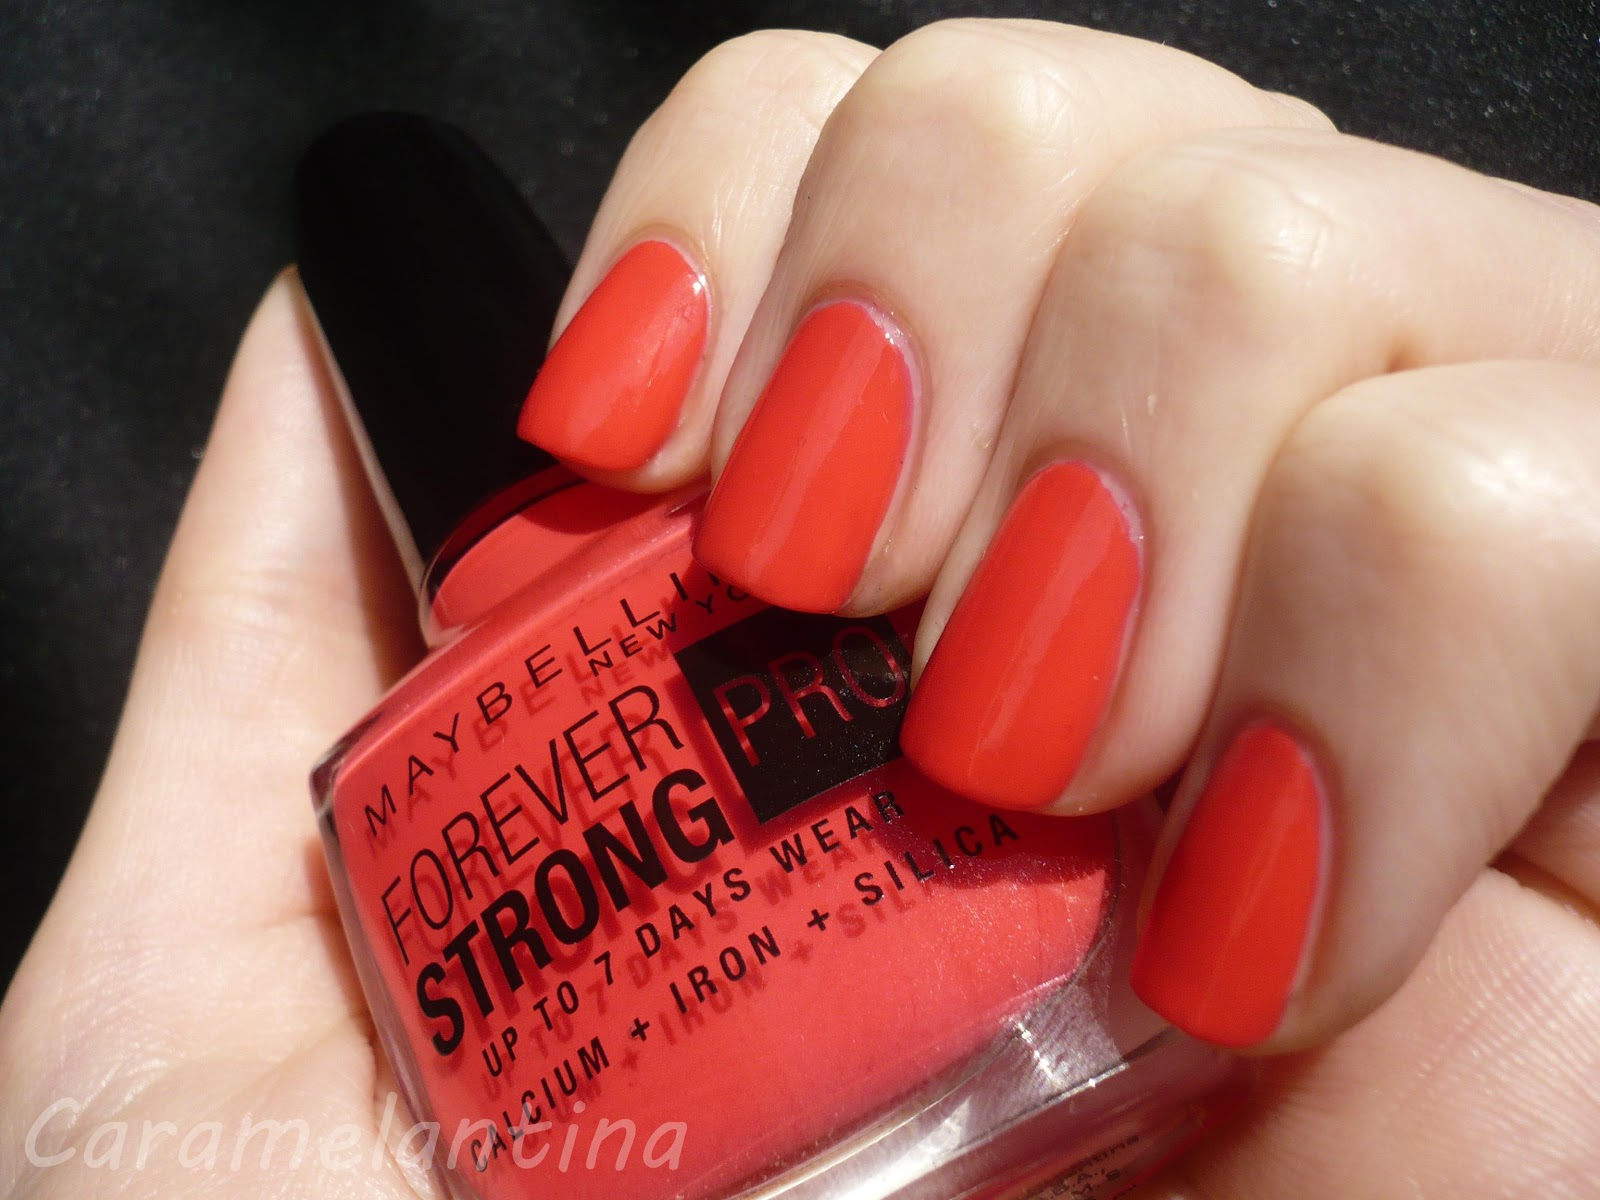 Maybelline Forever Strong PRO Rose Salsa 290 Hot Salsa swatch review